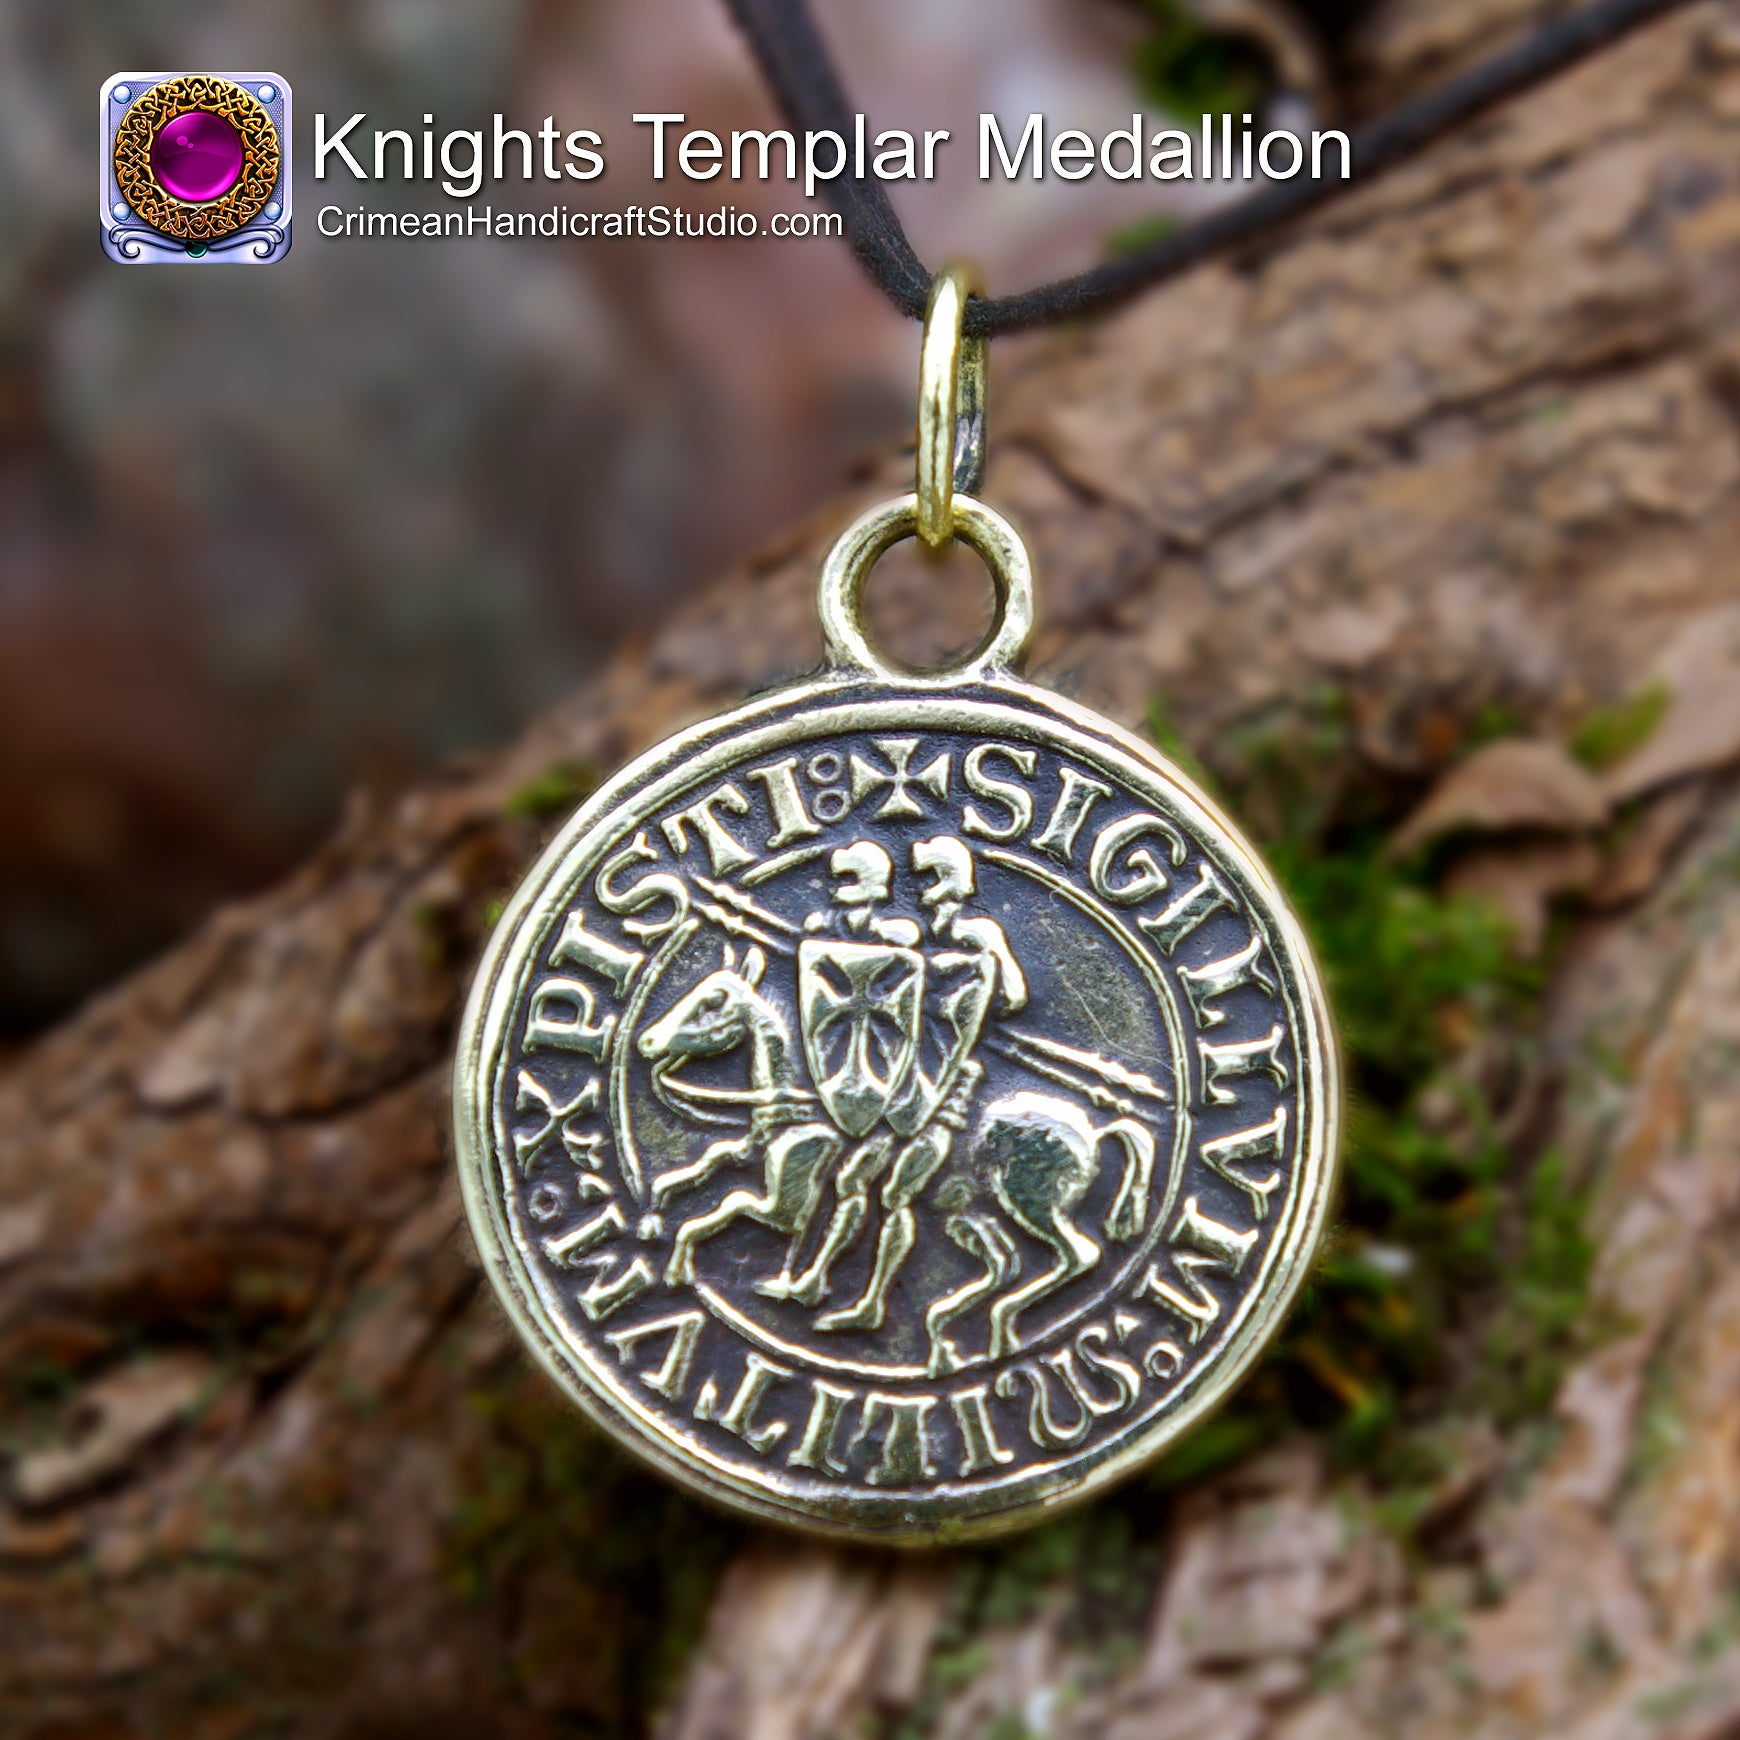 c h studio knights templar medallion